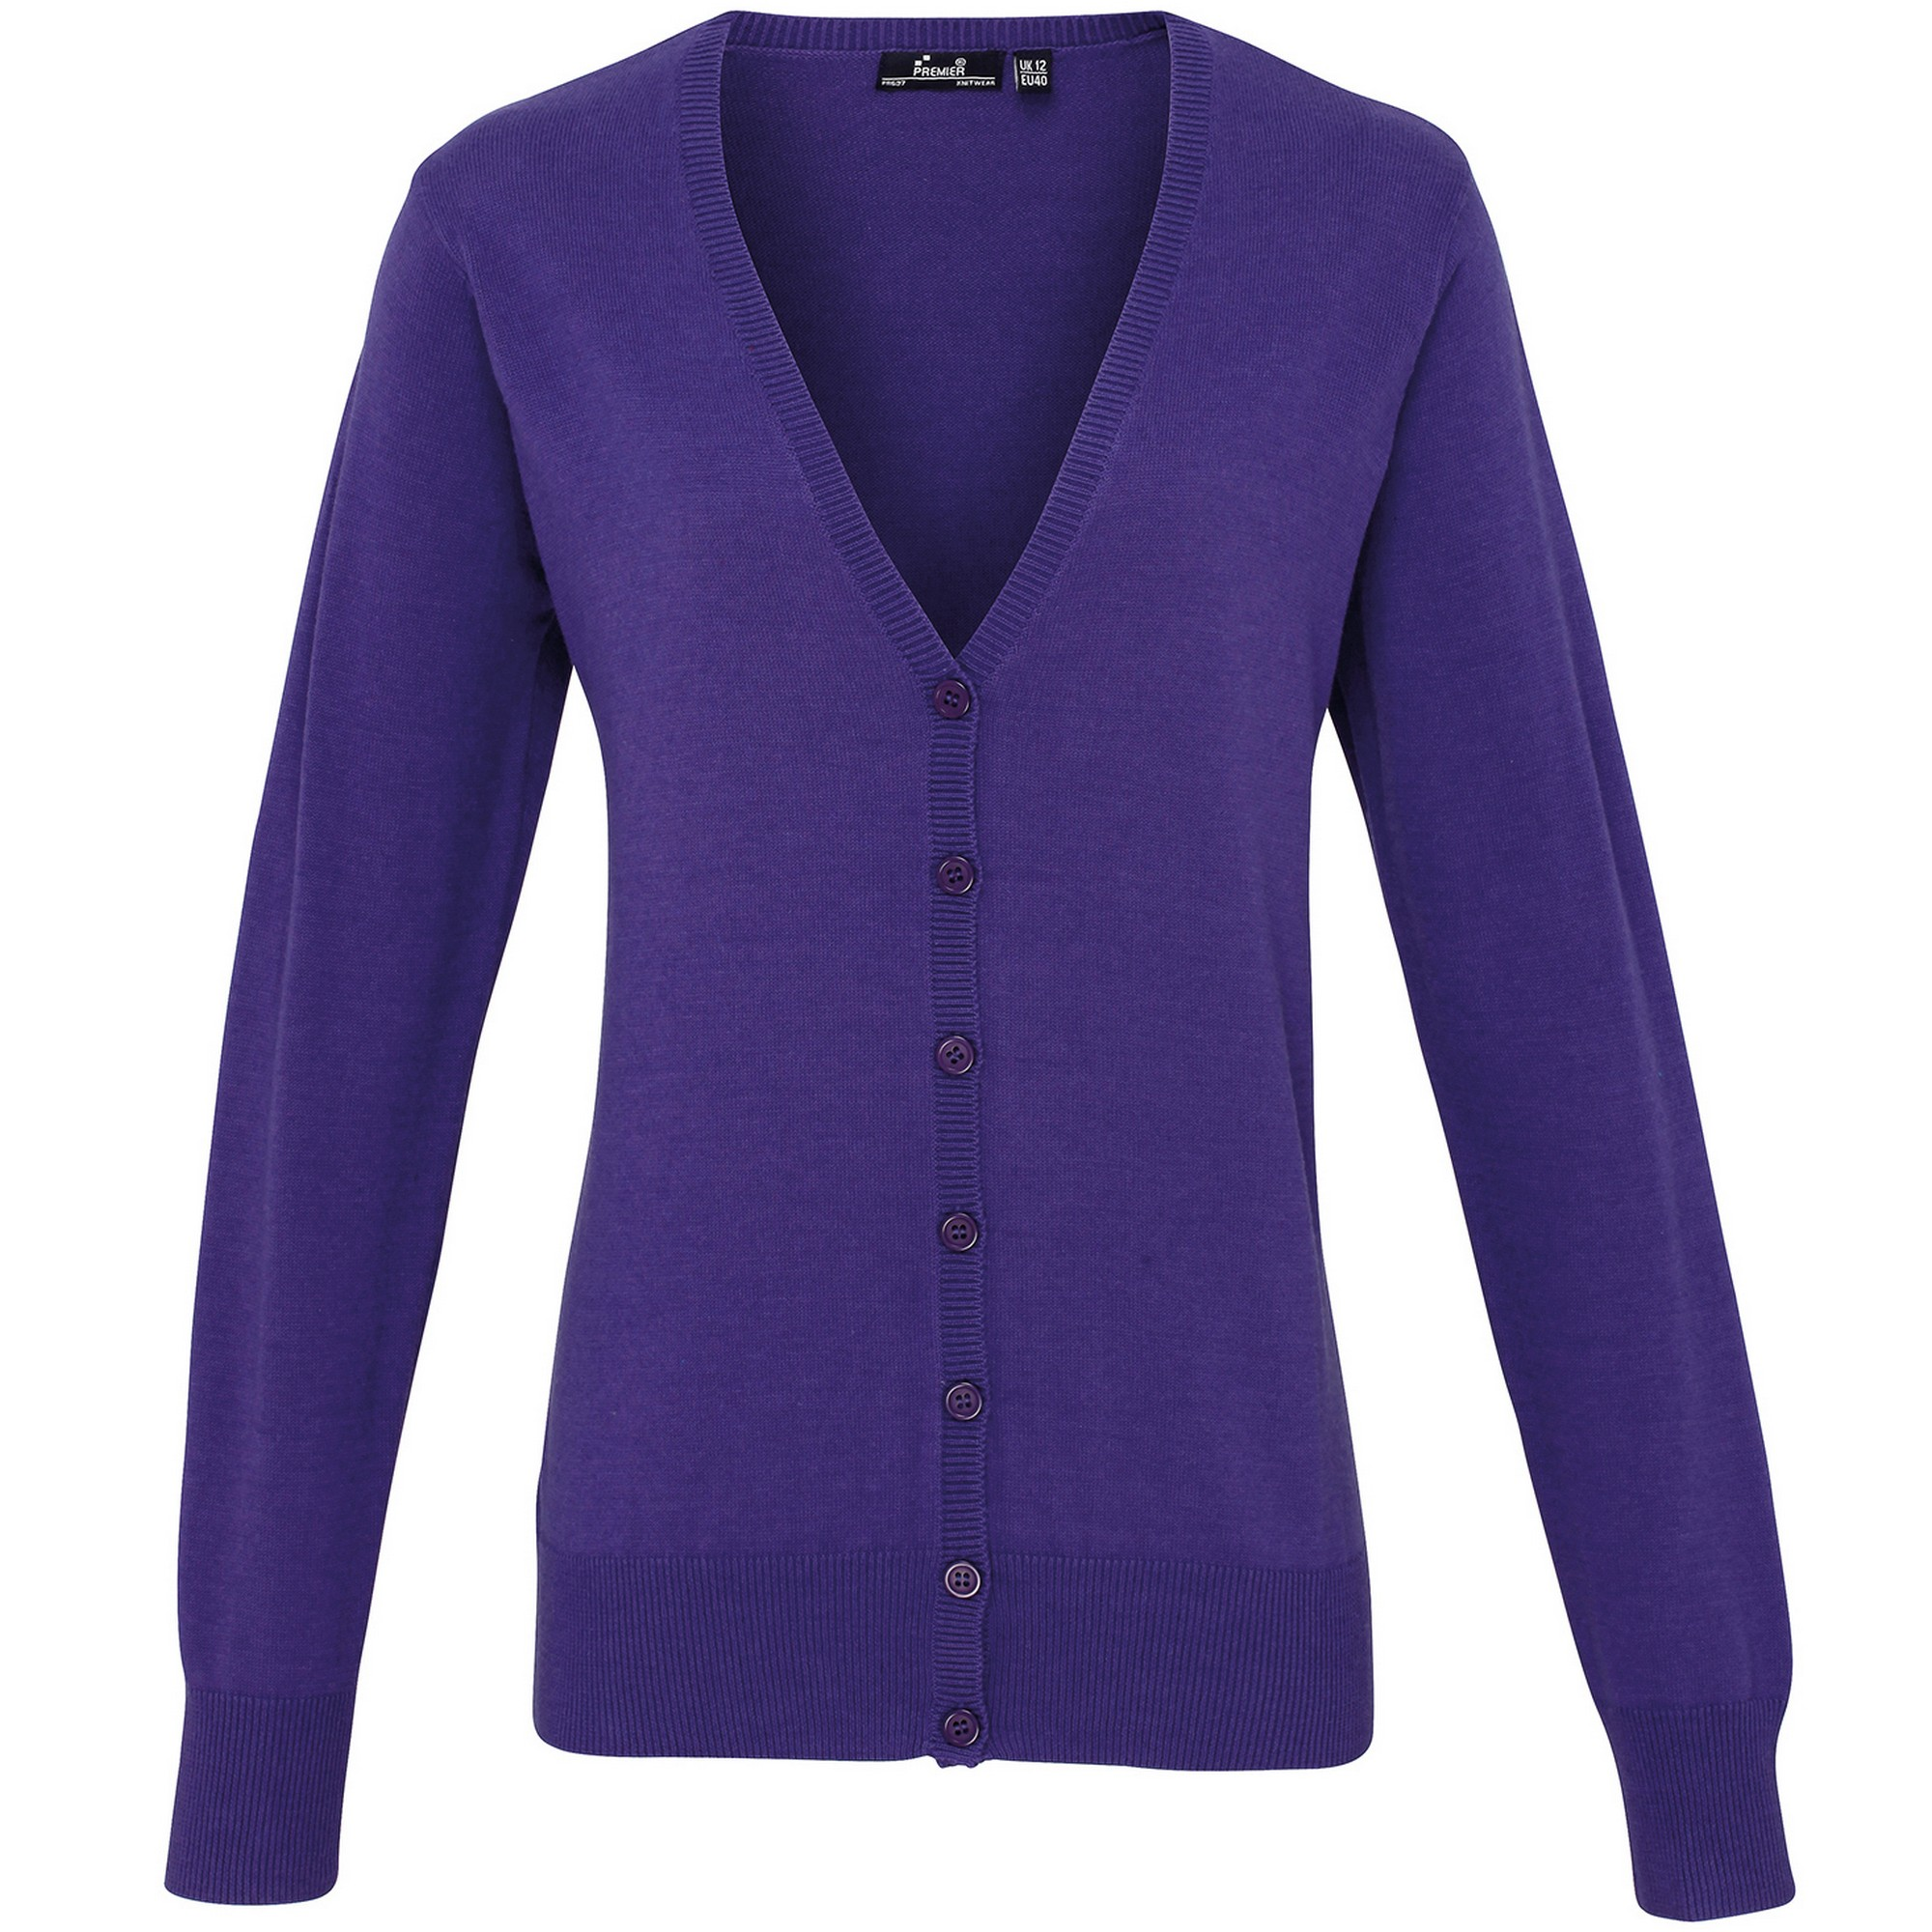 Premier Womens/Ladies Button Through Long Sleeve V-neck Knitted Cardigan (8) (Purple)